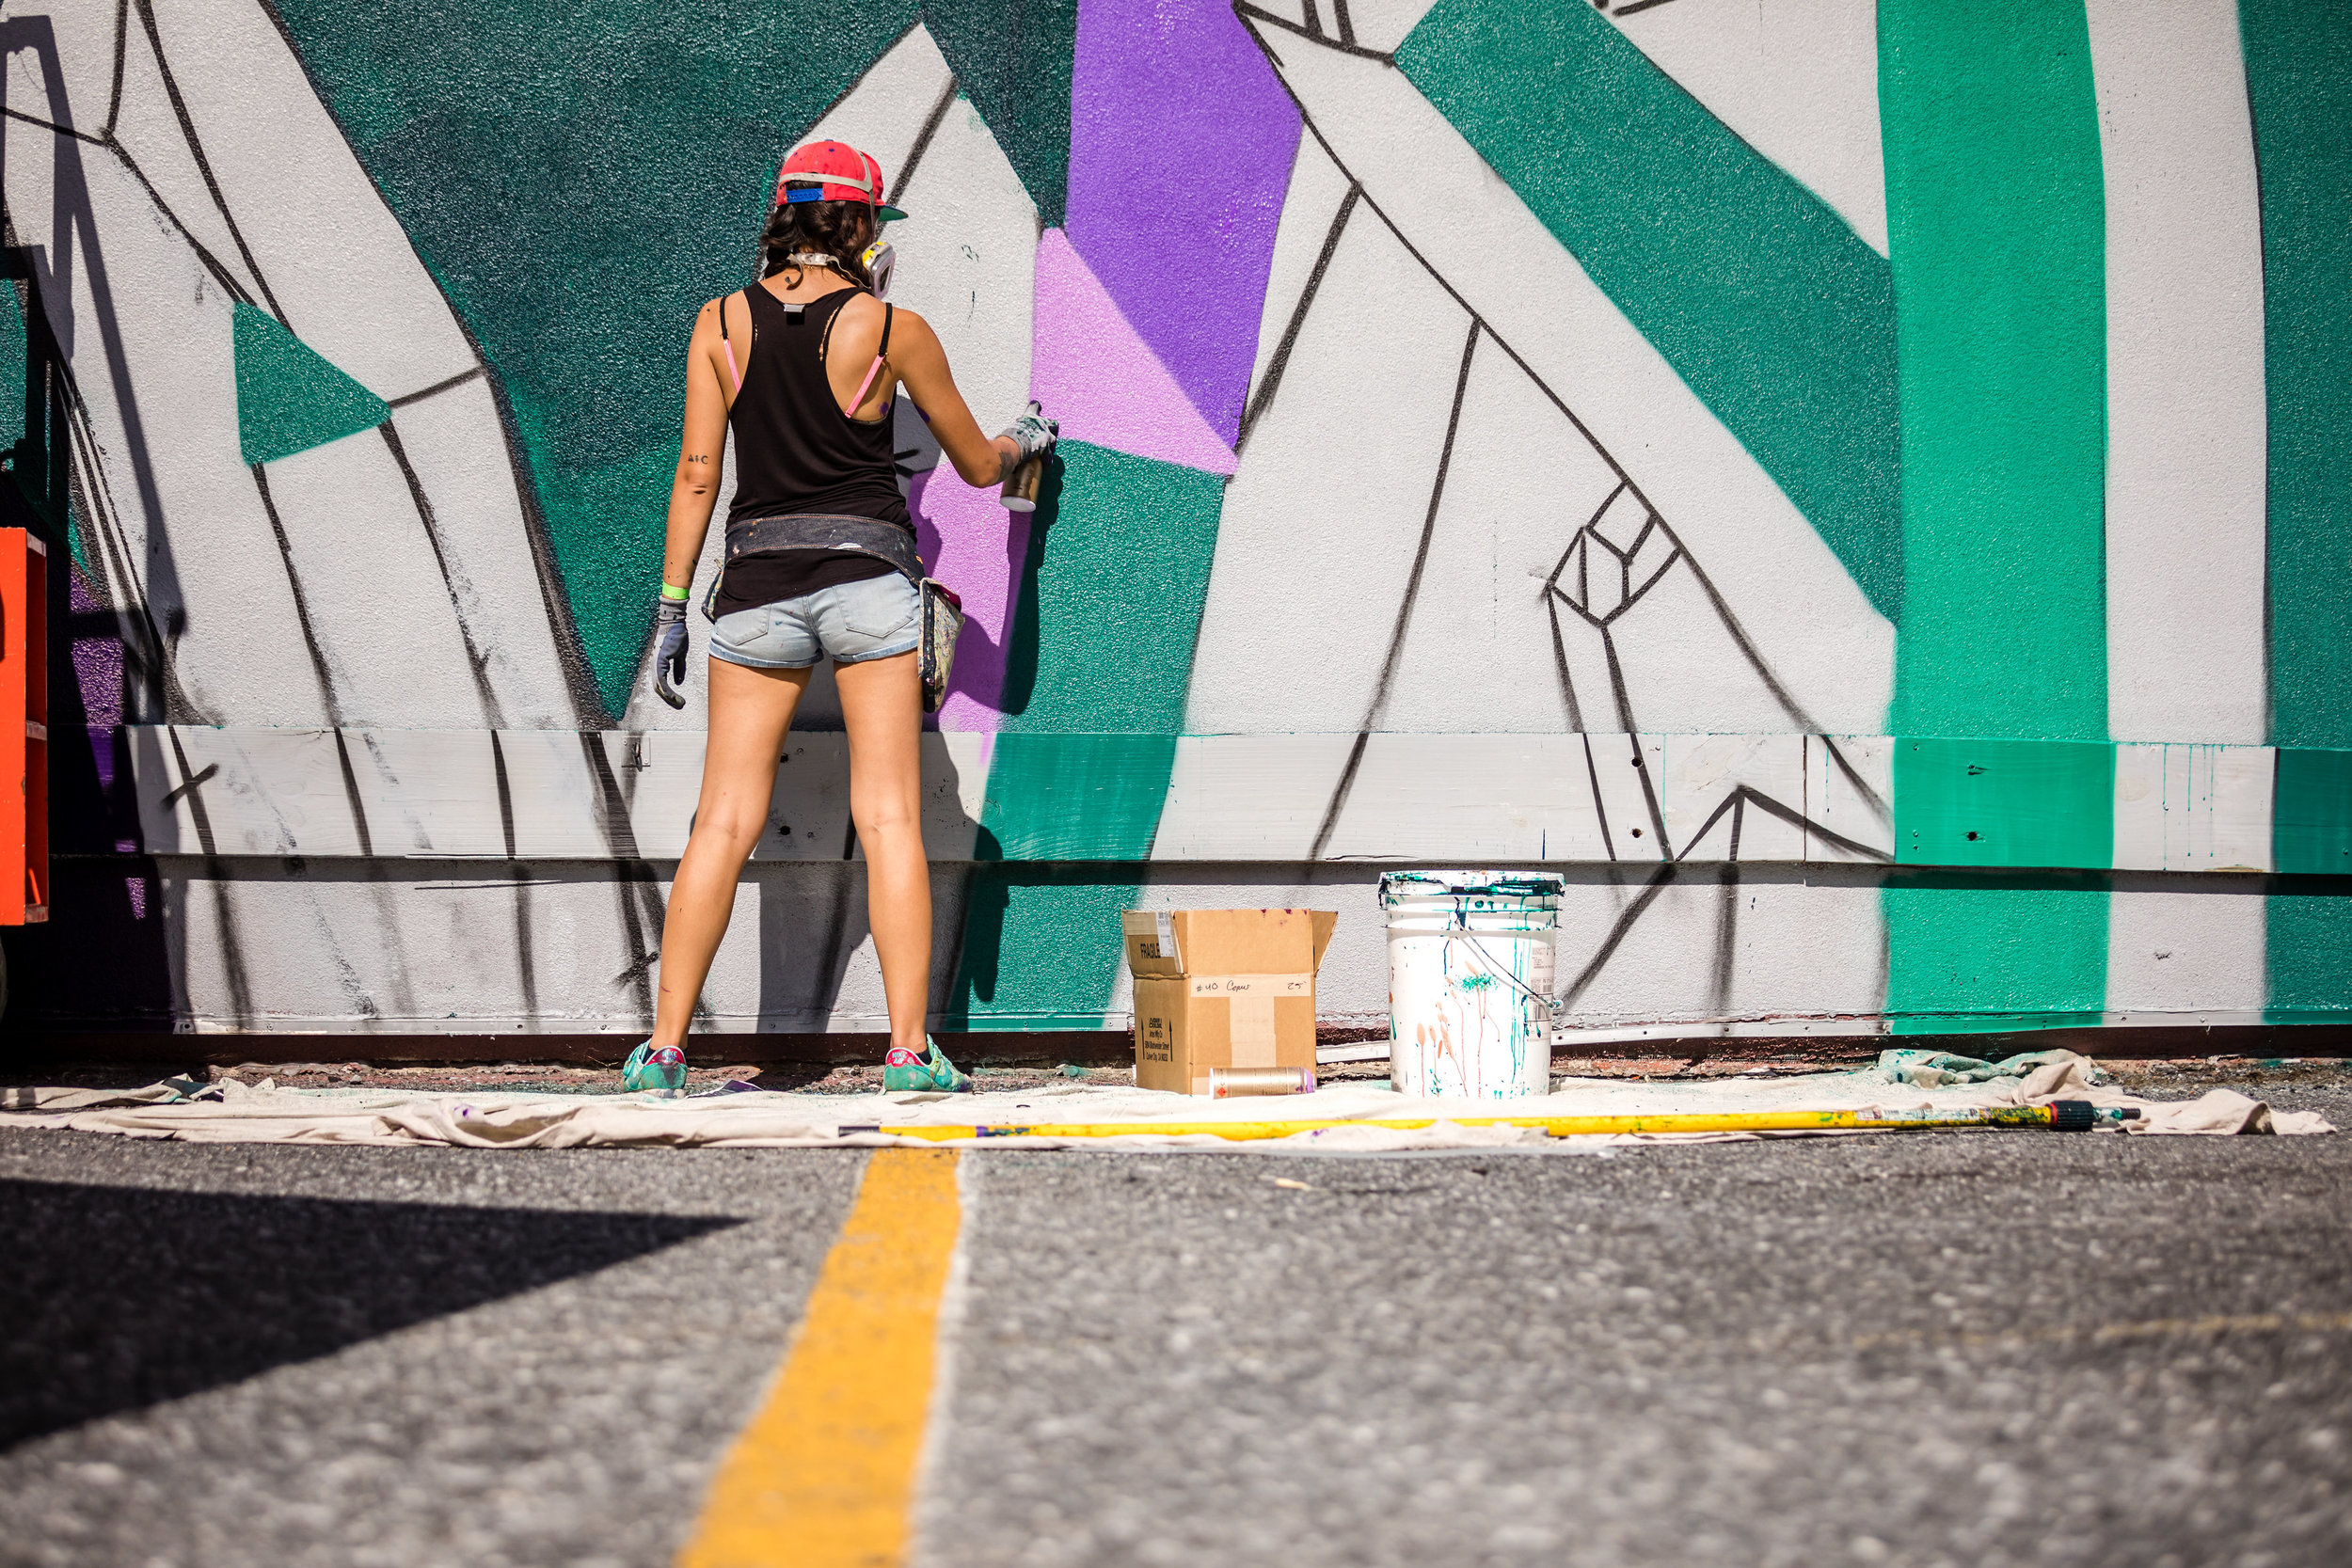 Landon_Wise_Photography_MuralFest-135.jpg